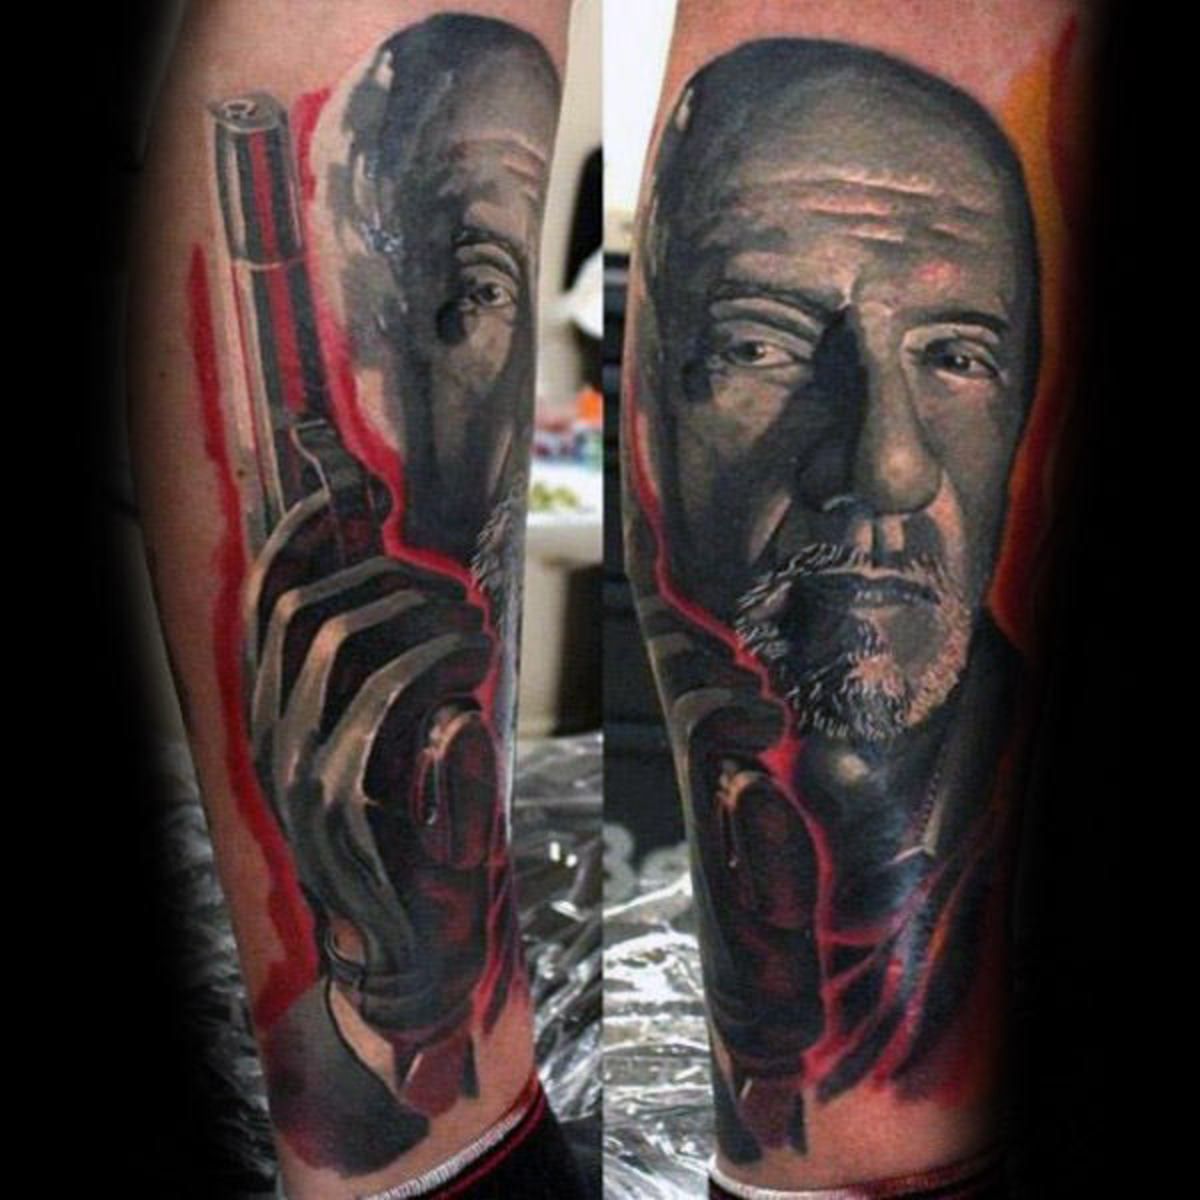 hank-schrader-breaking-bad-guys-leg-portrait-tattoos